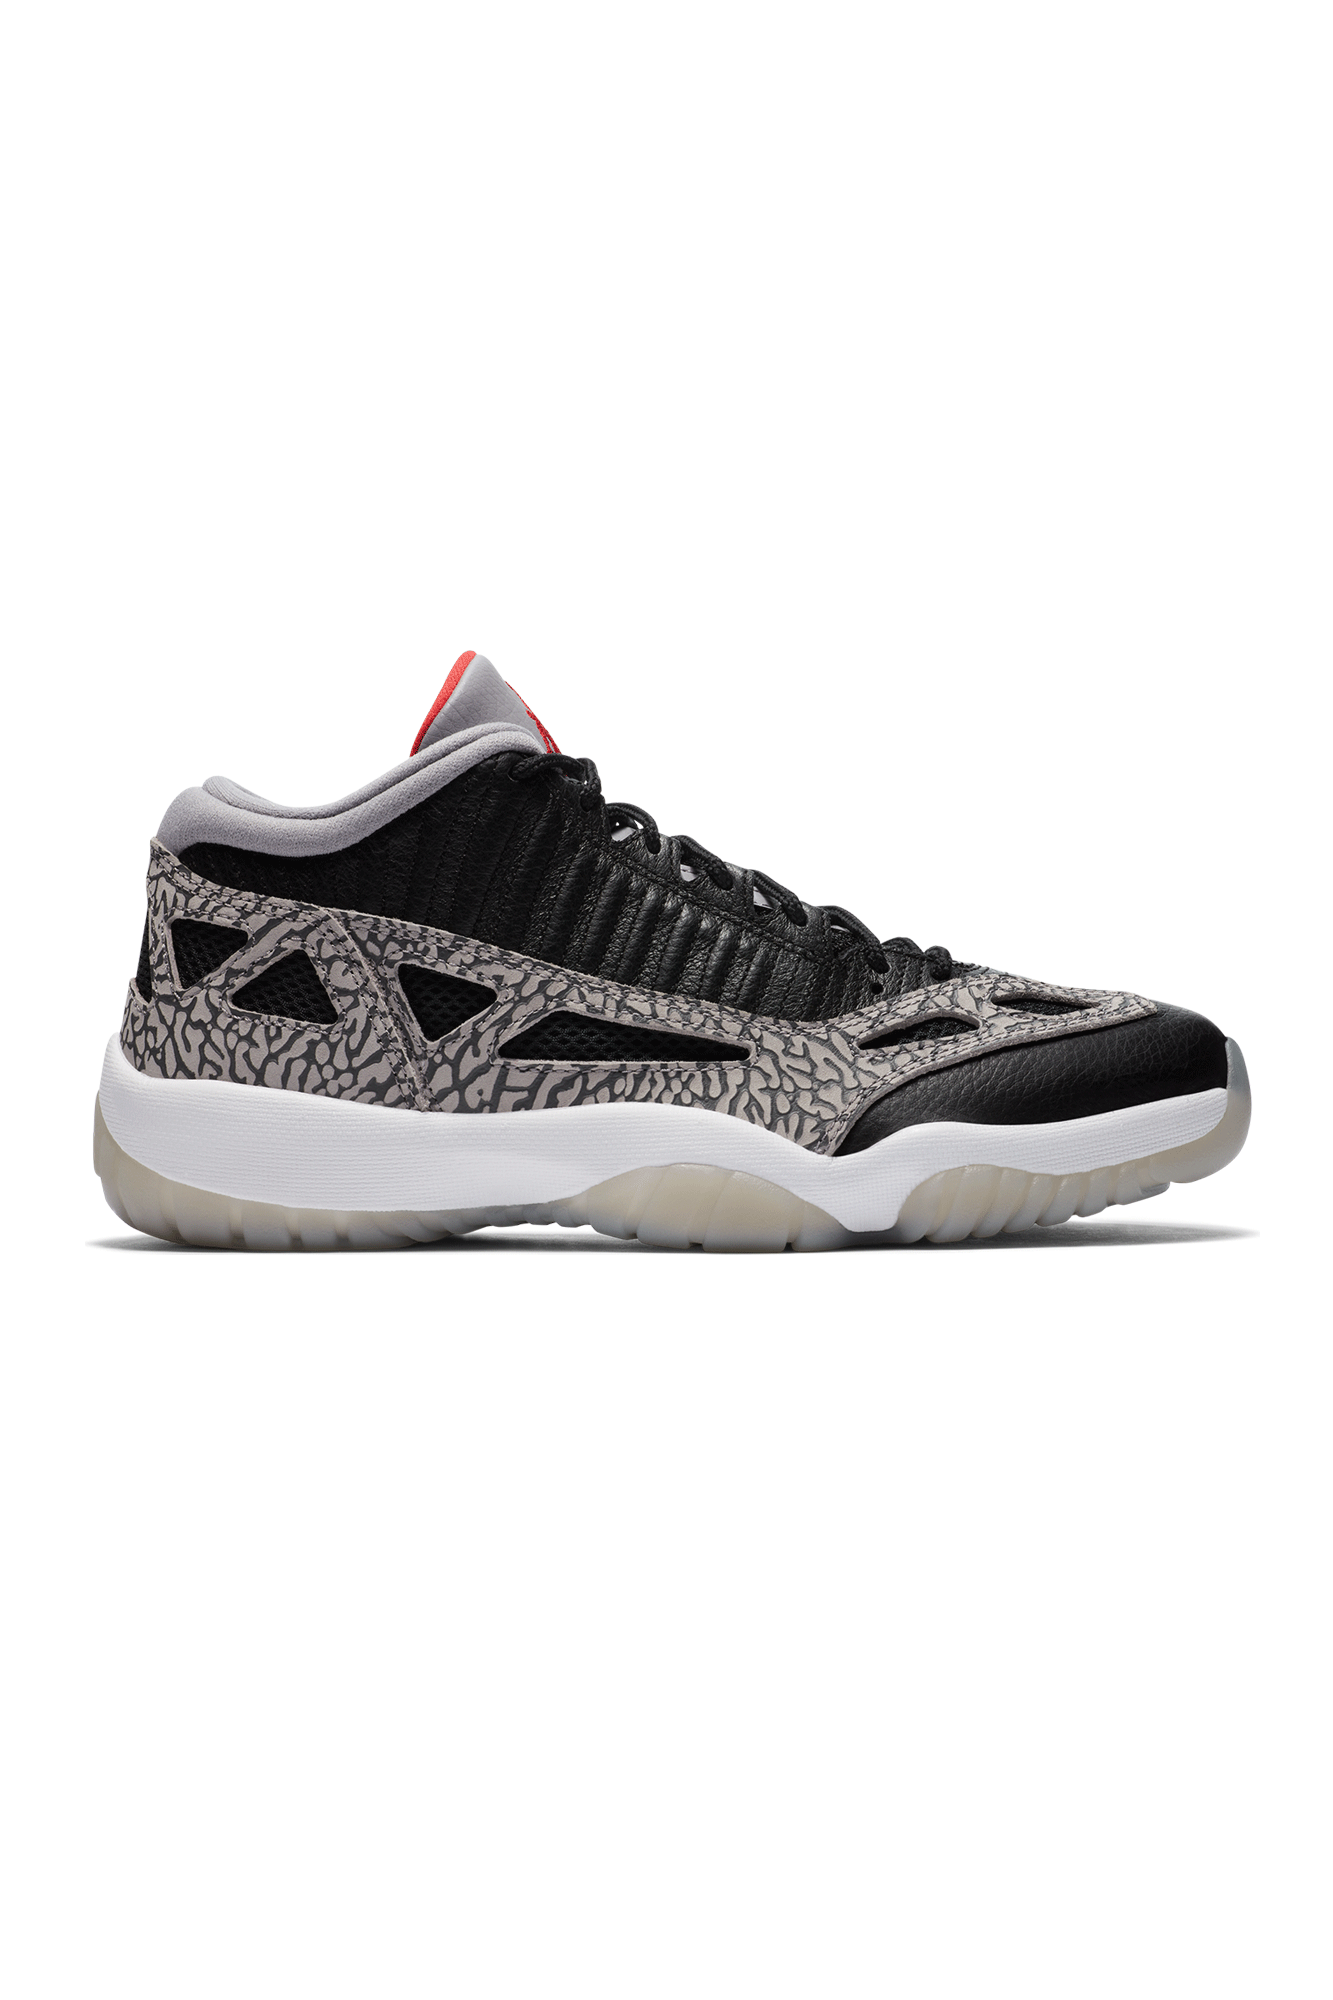 "Jordan Brand Sneakers 11 Retro Low I.E: ""Black Cement"" Black 919712-#000#006#7 - One Block Down"